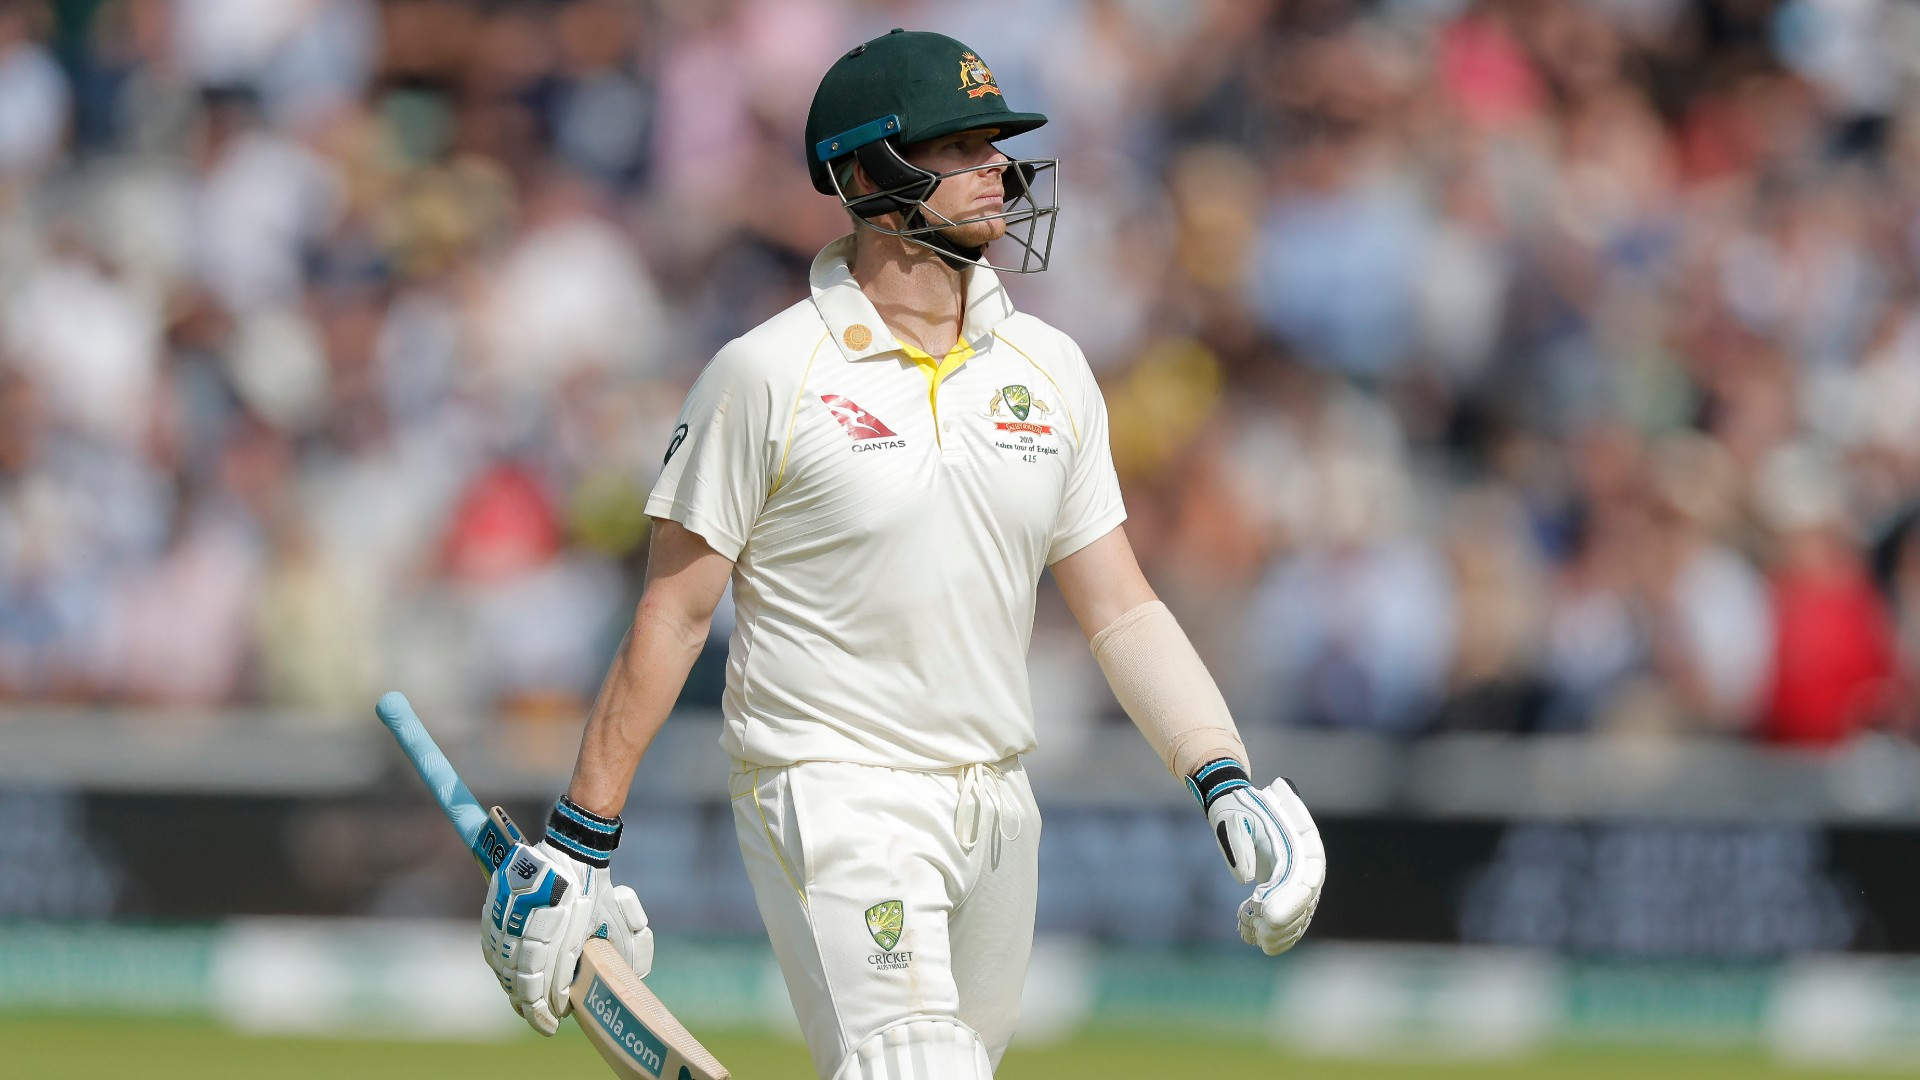 One of those things - Woakes keen not to wade in on Smith flashpoint